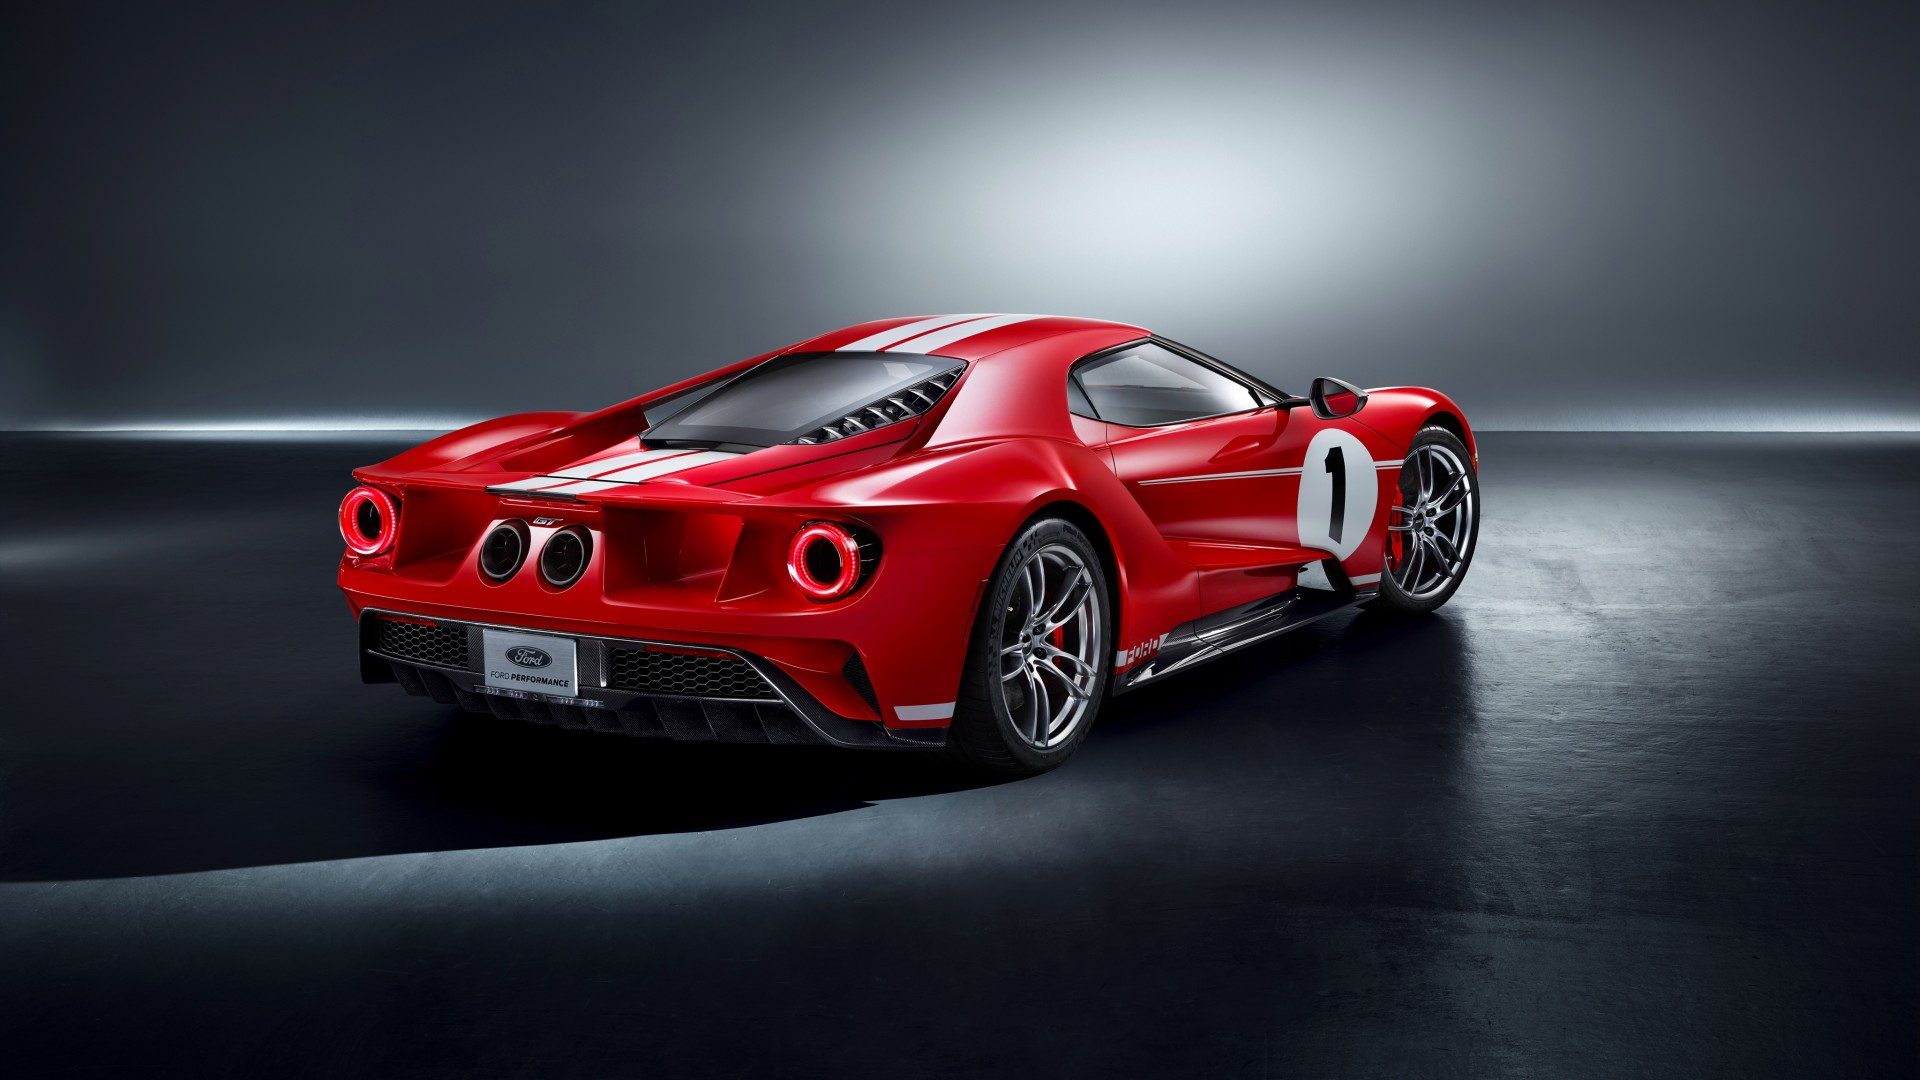 2018 Ford Gt 67 Heritage Edition 4k 2 Wallpaper Hd Car